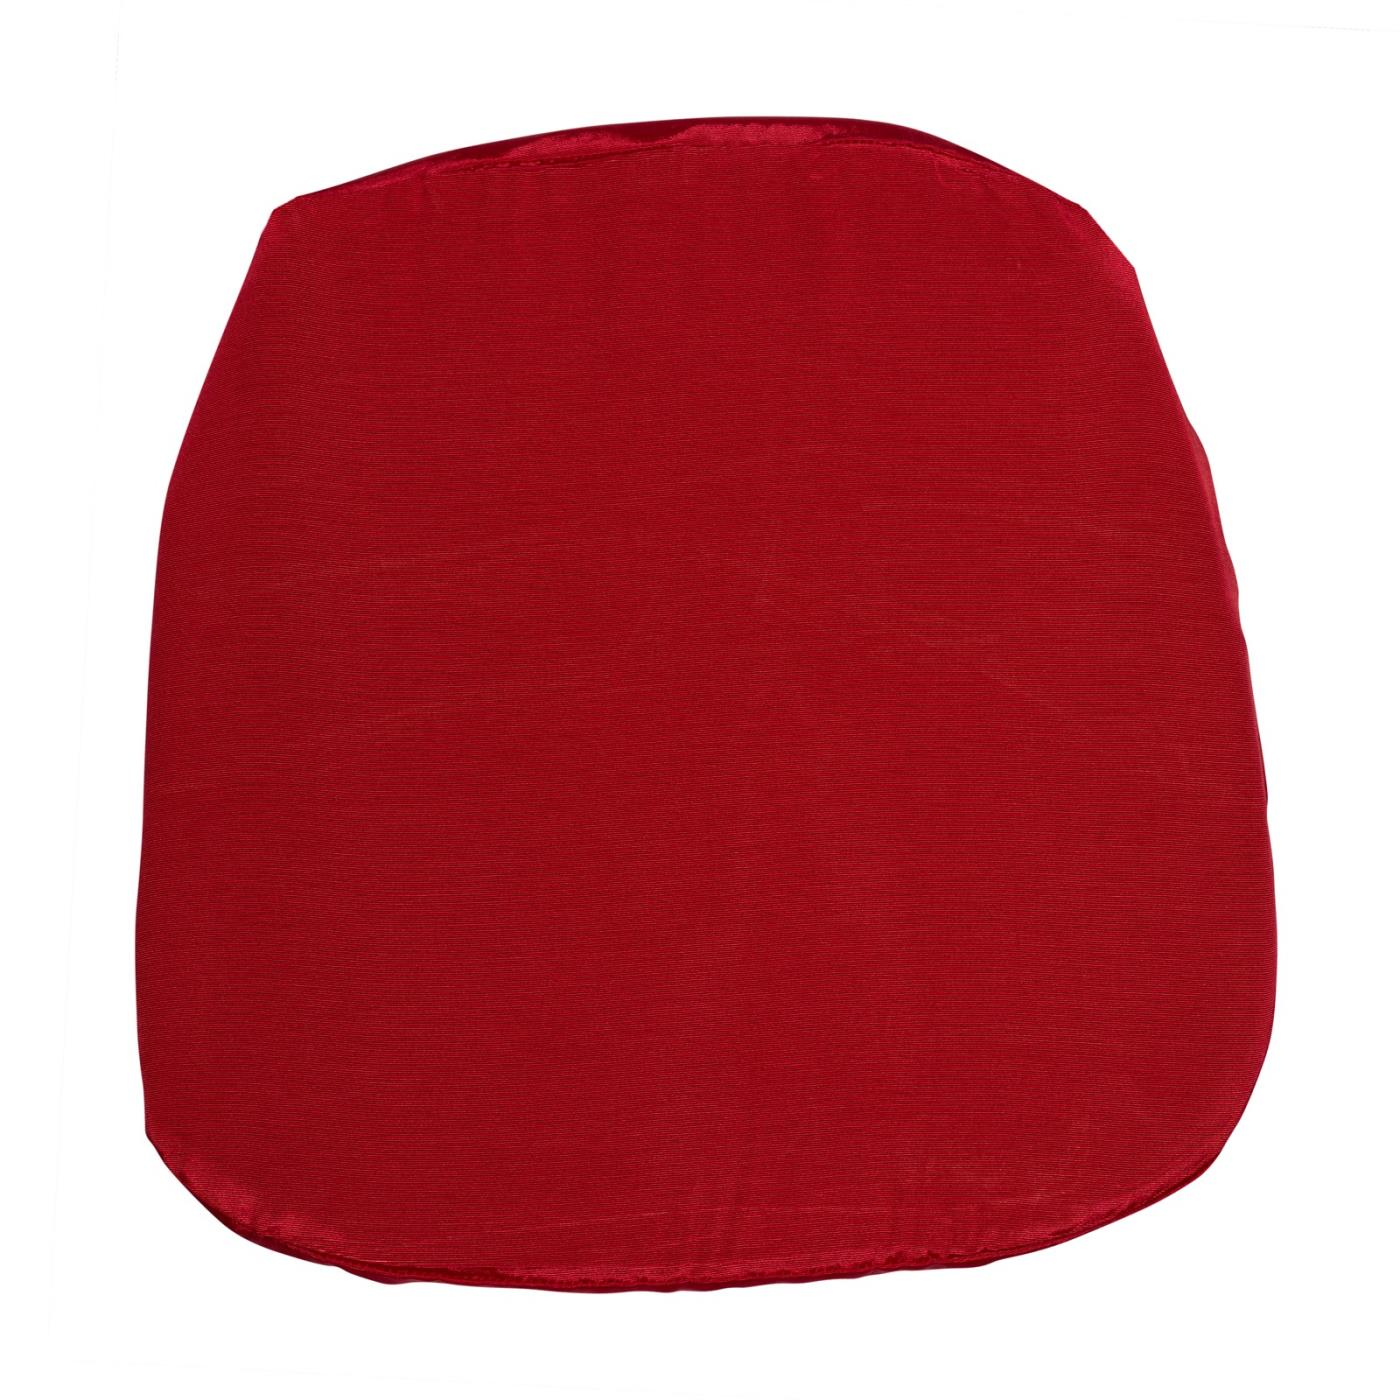 Bengaline Seat Cushion - Valentine Red